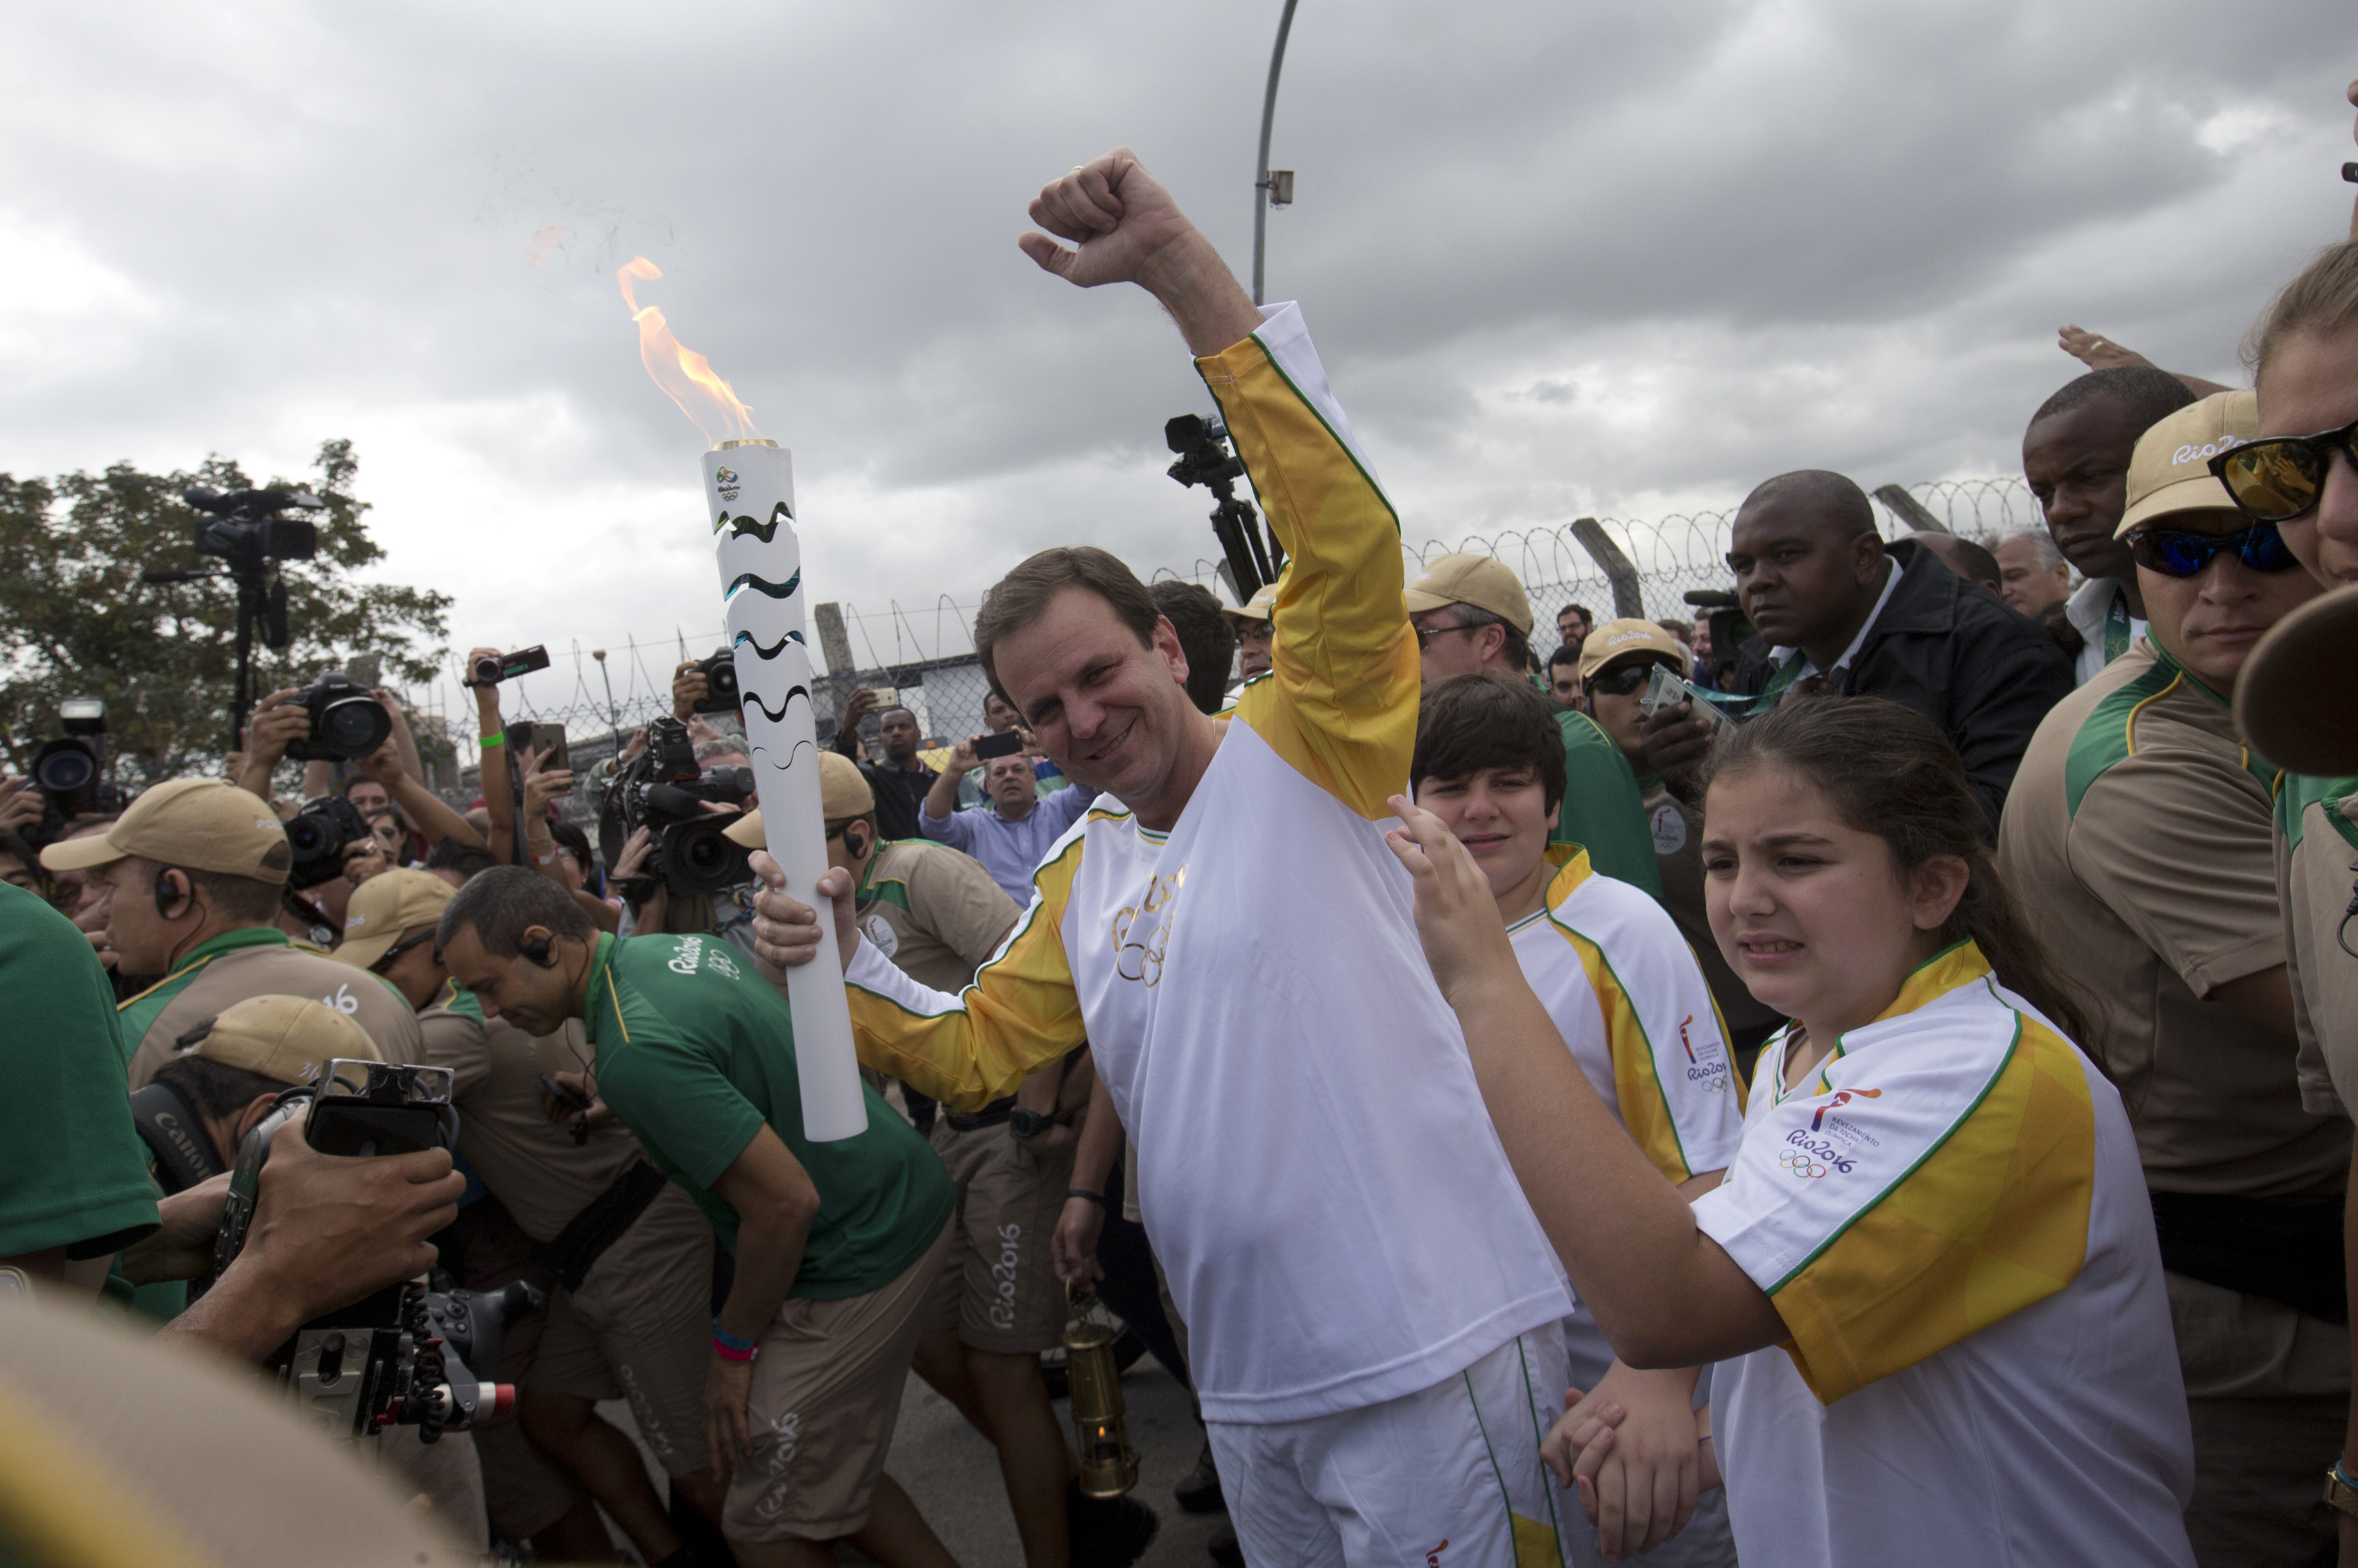 FILE - In this Aug. 3, 2016 file photo, Rio de Janeiro's Eduardo Paes, center, holds the Olympic torch on its way for the opening ceremony of Rio's 2016 Summer Olympics, in Rio de Janeiro, Brazil. Paes has been the face of the Rio Olympics, but he's been